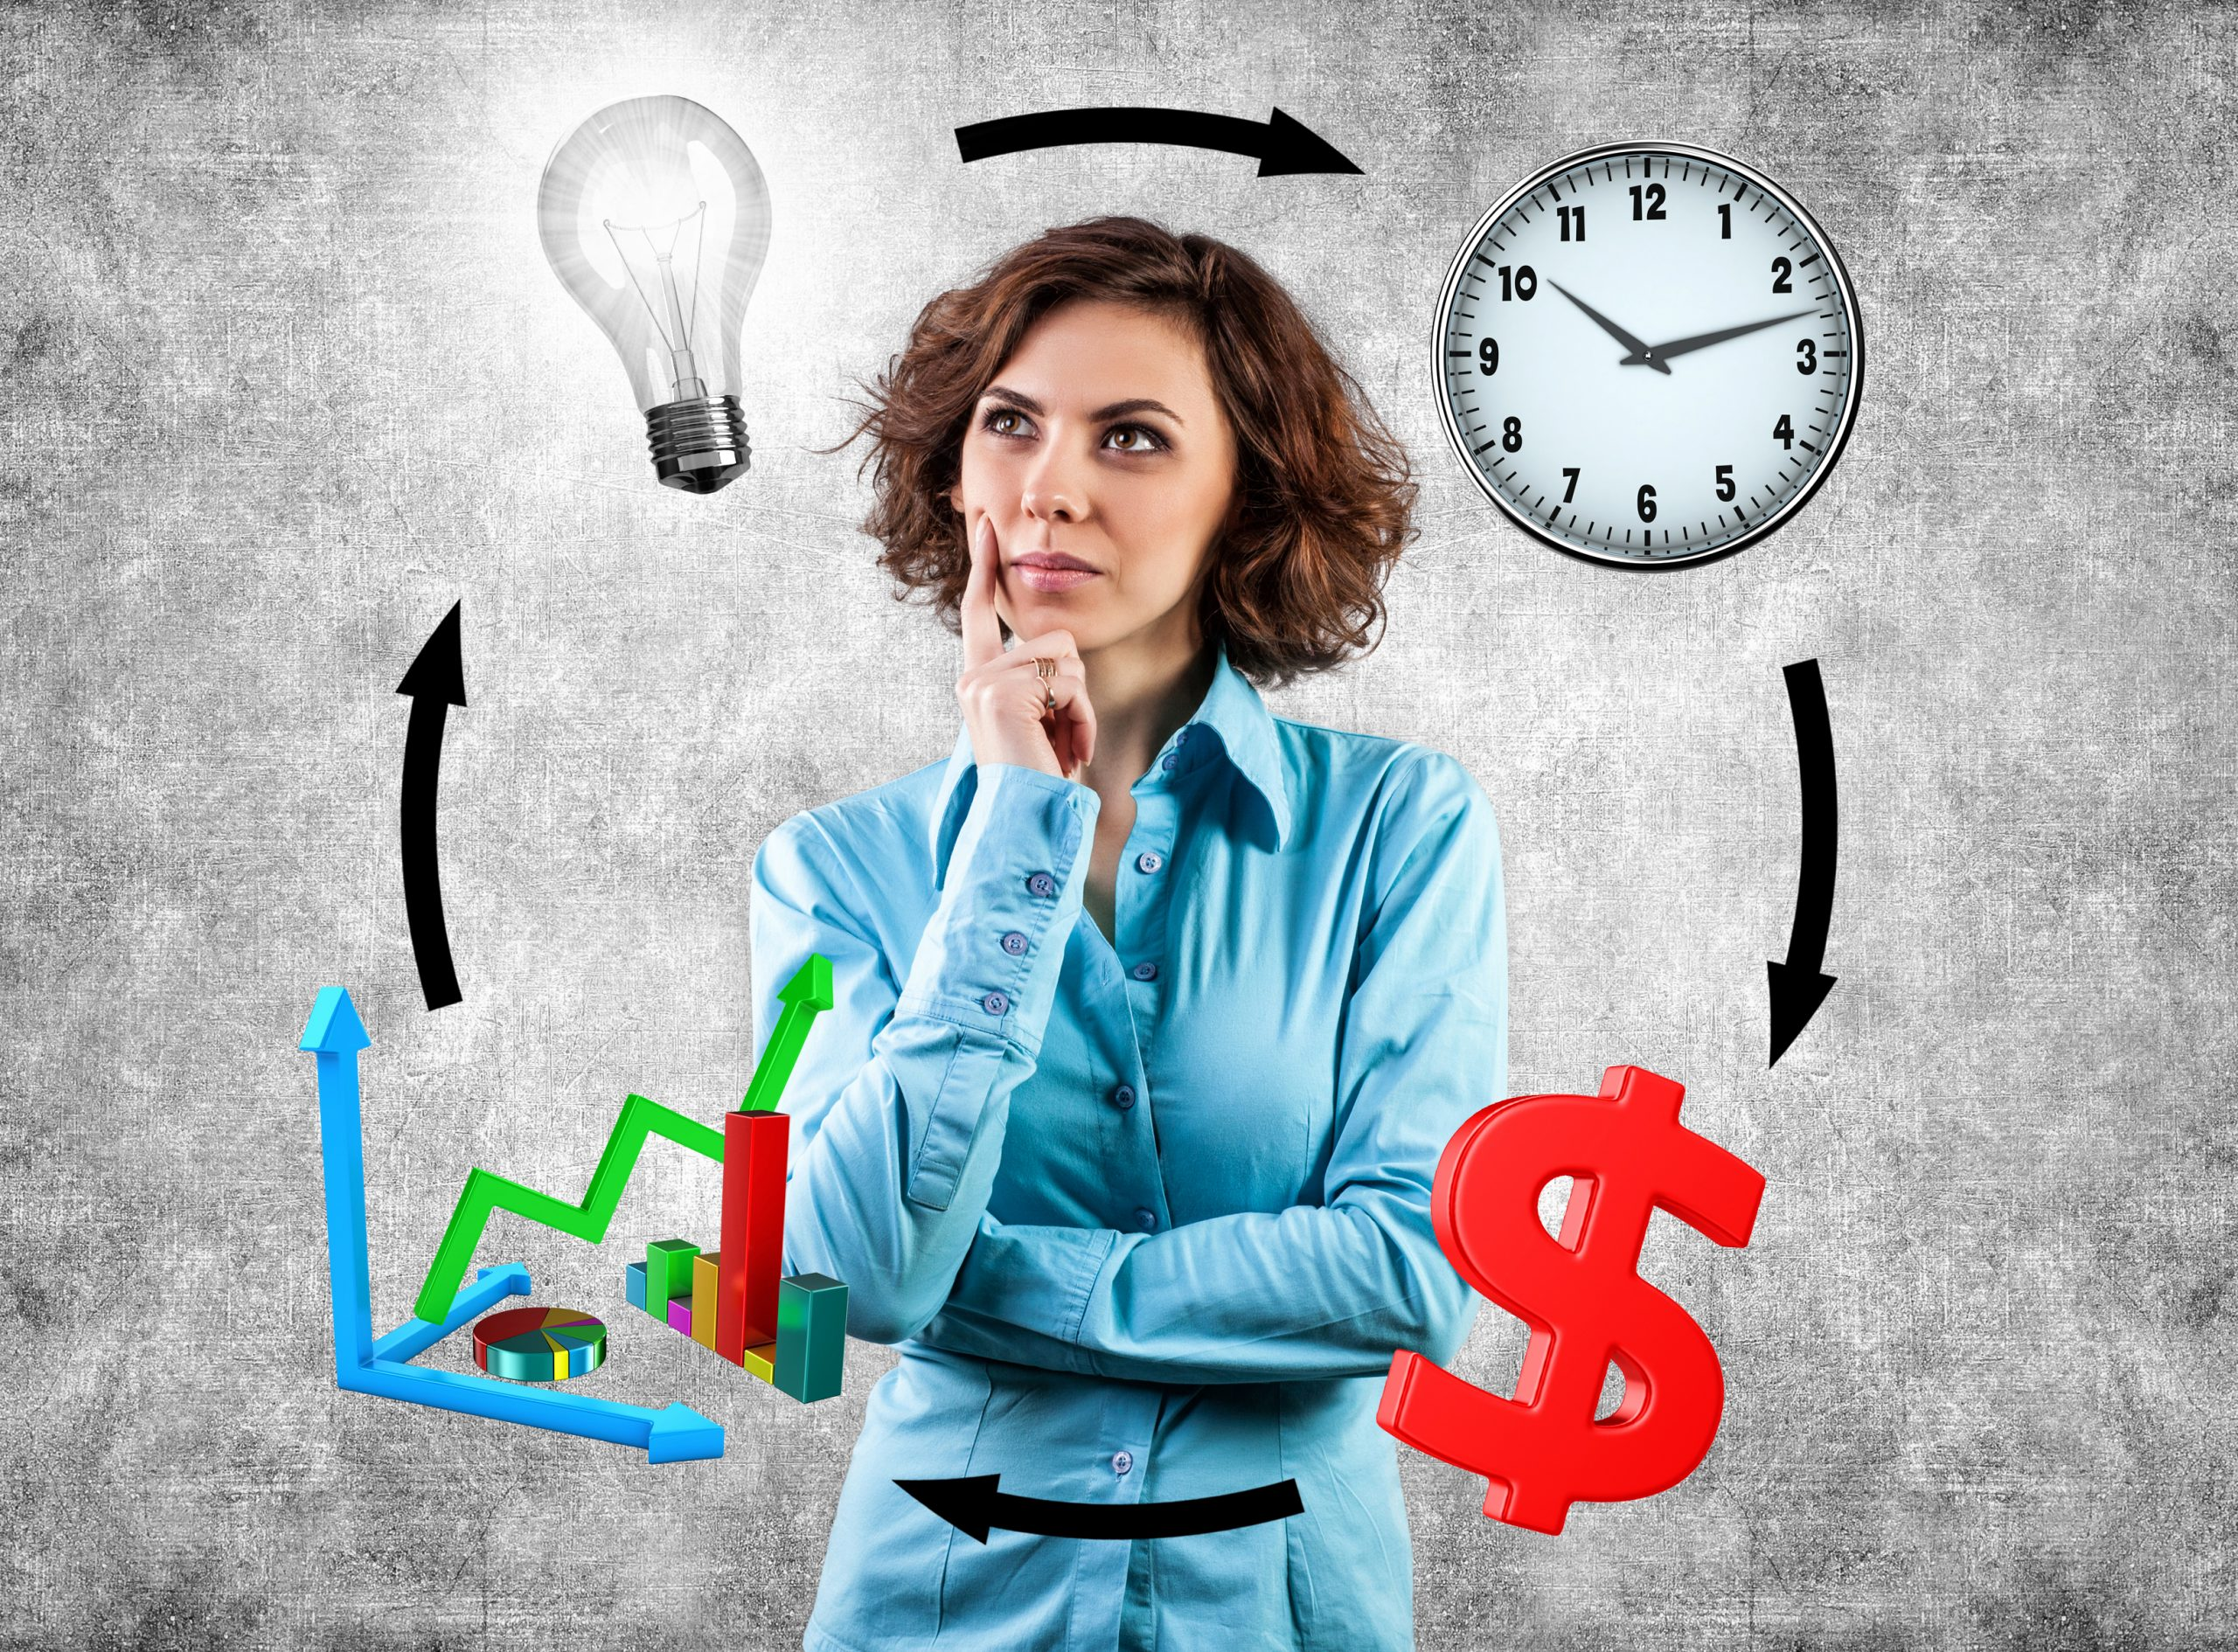 Technical Consulting Saves Time and Money